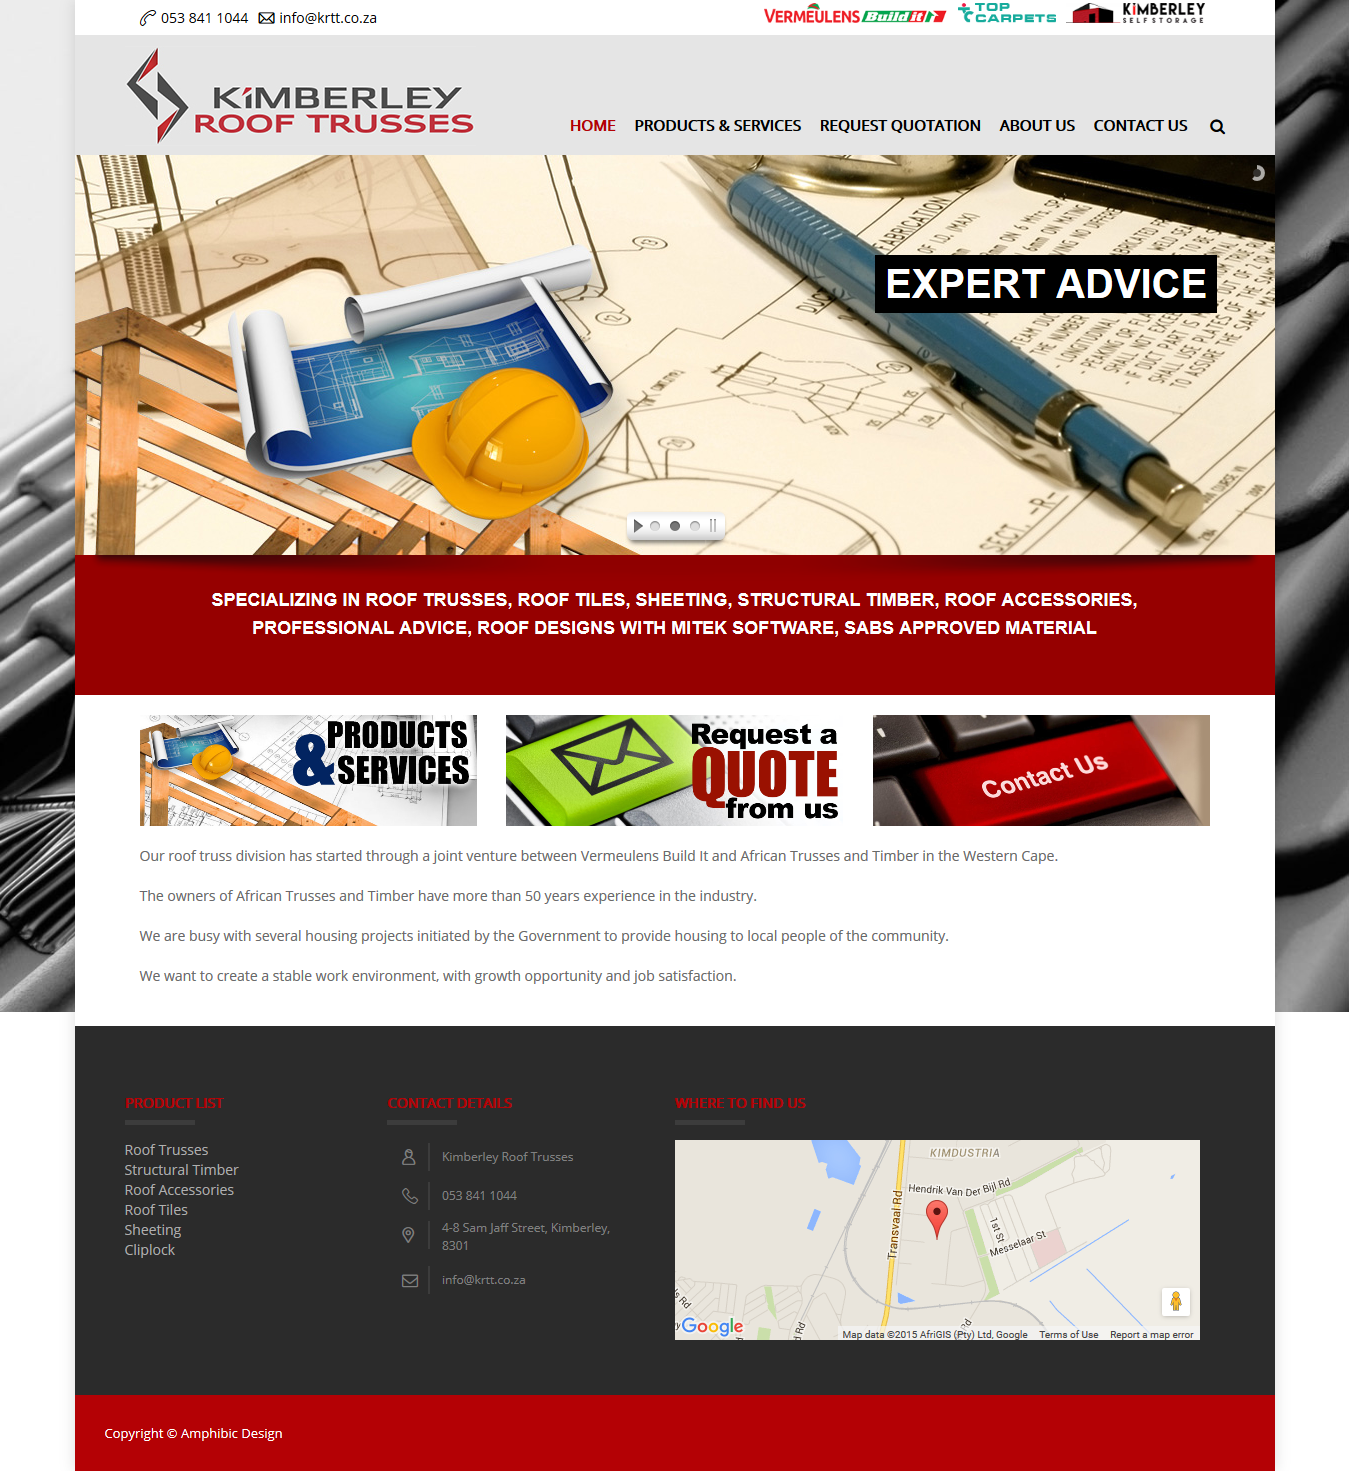 Kimberley Roof Trusses – Website